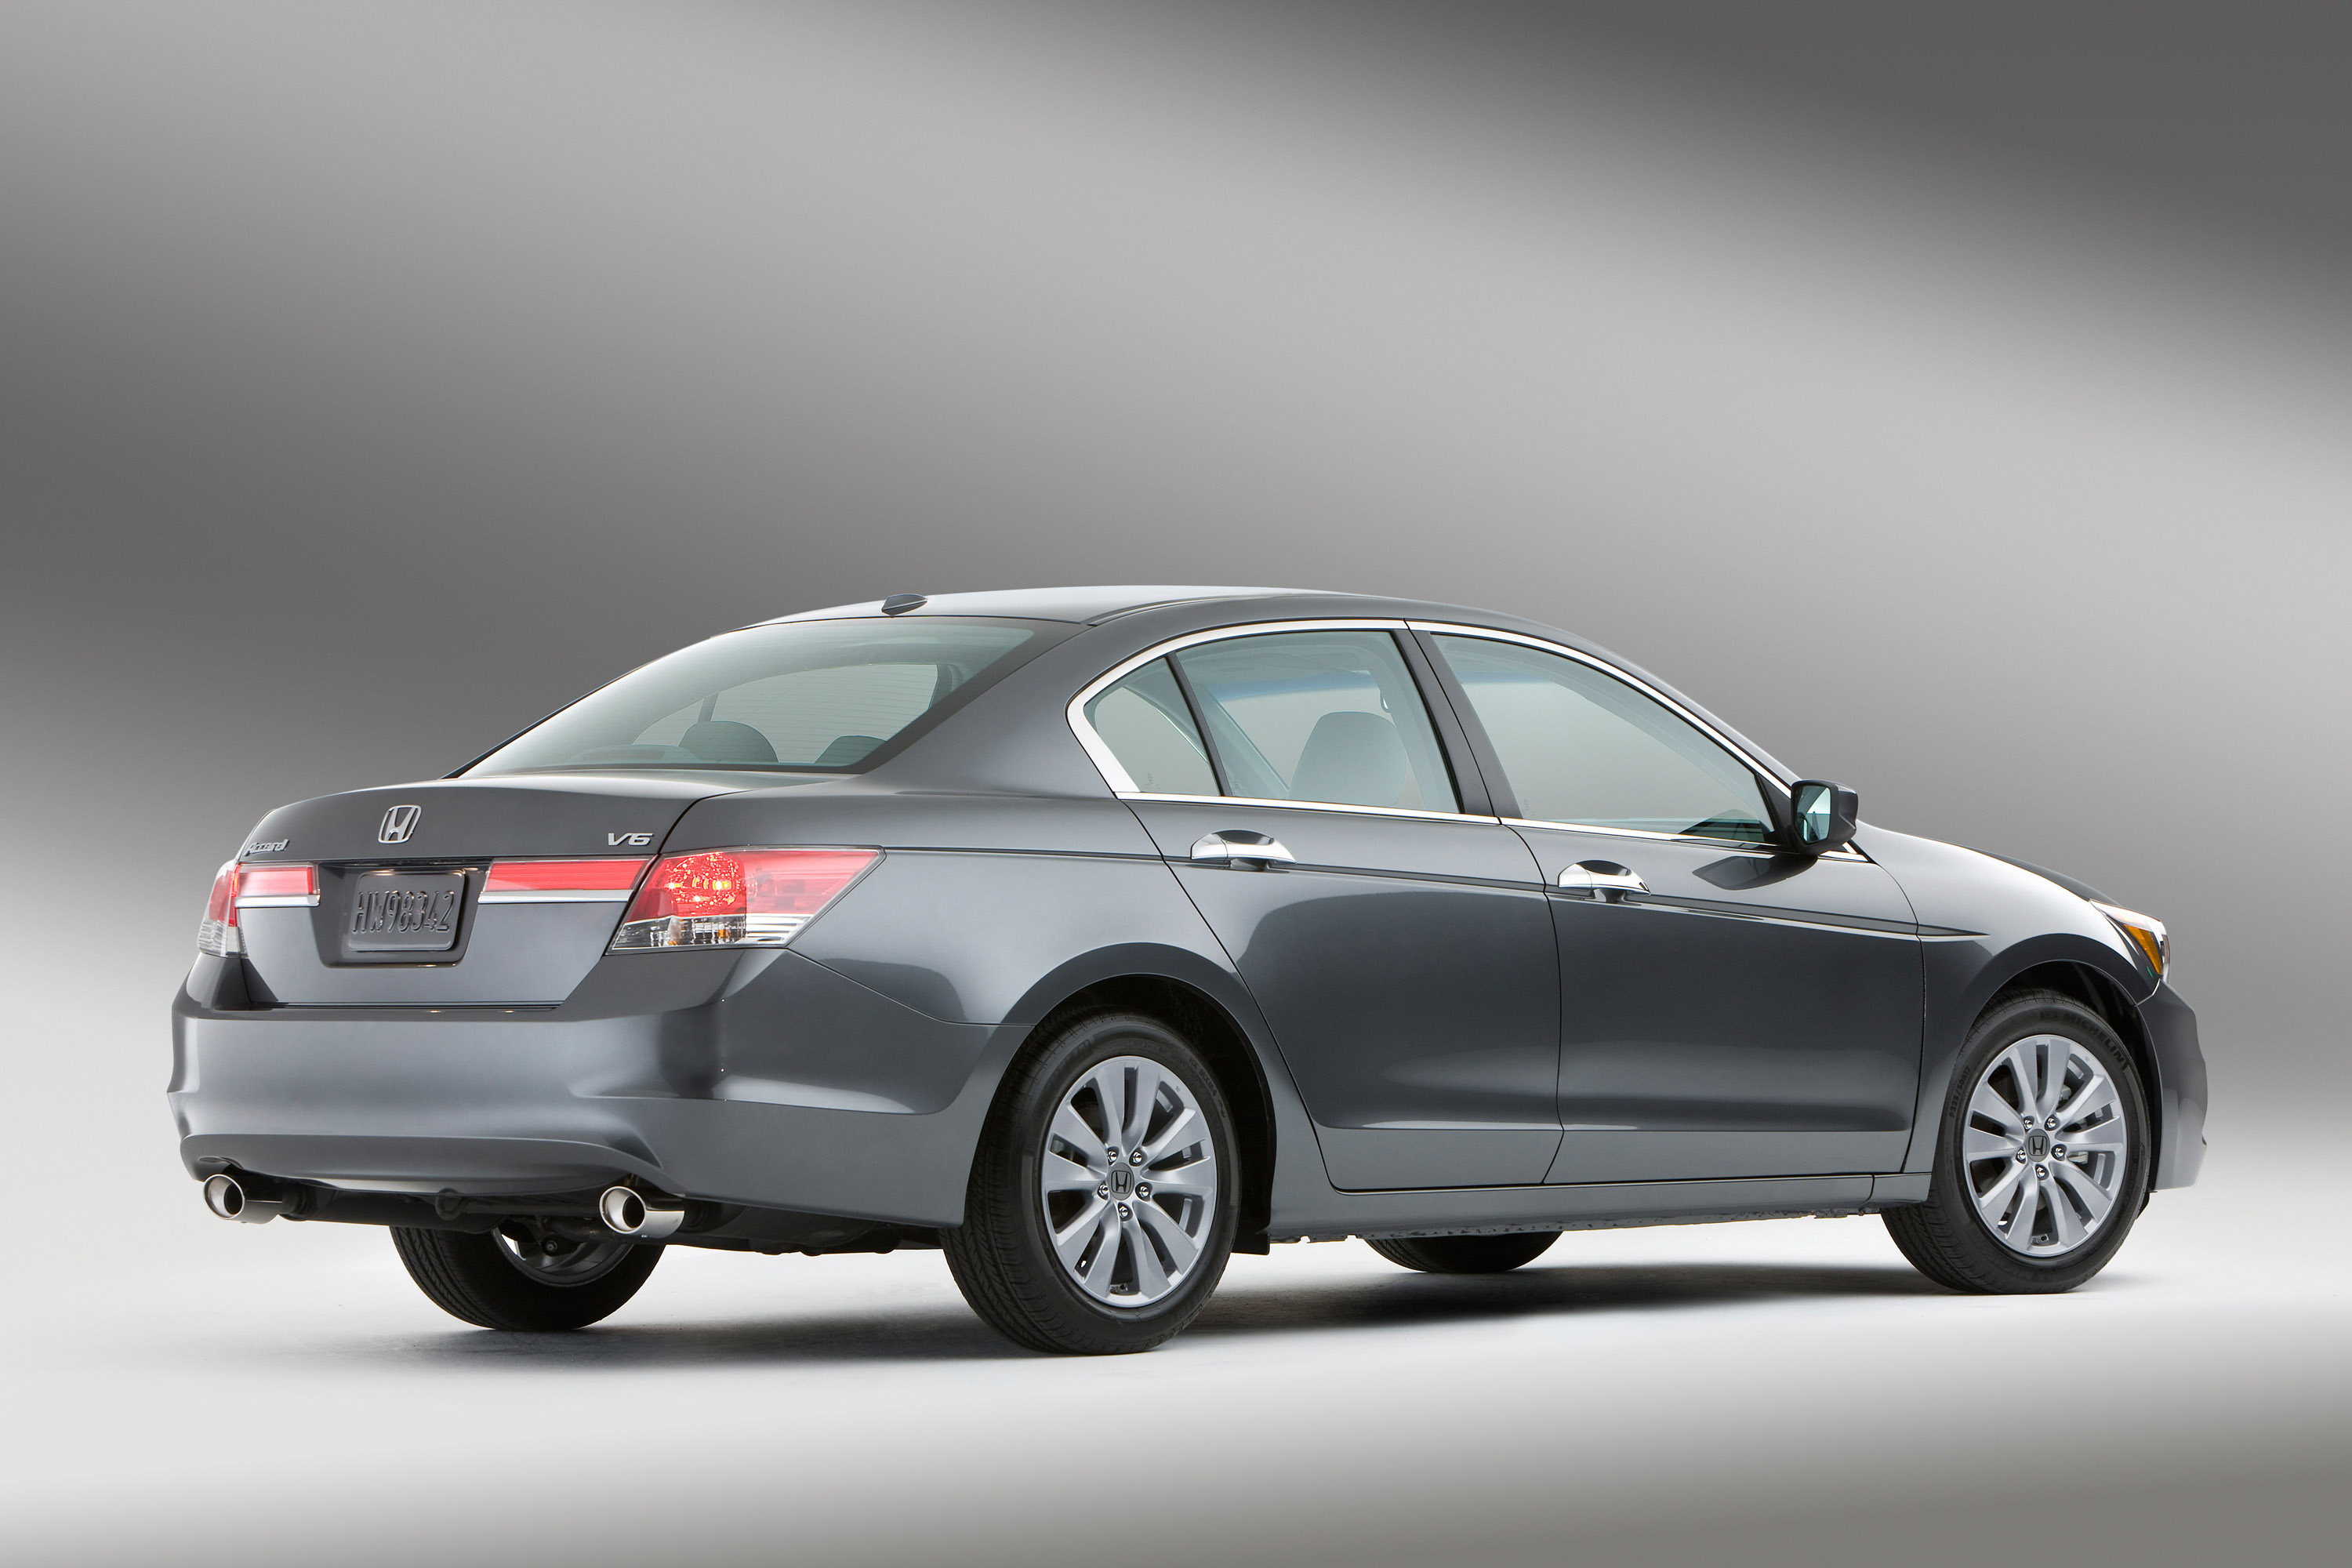 price refreshed permalink tag archives rises auto accord exl hybrid throughout pricing honda update car to